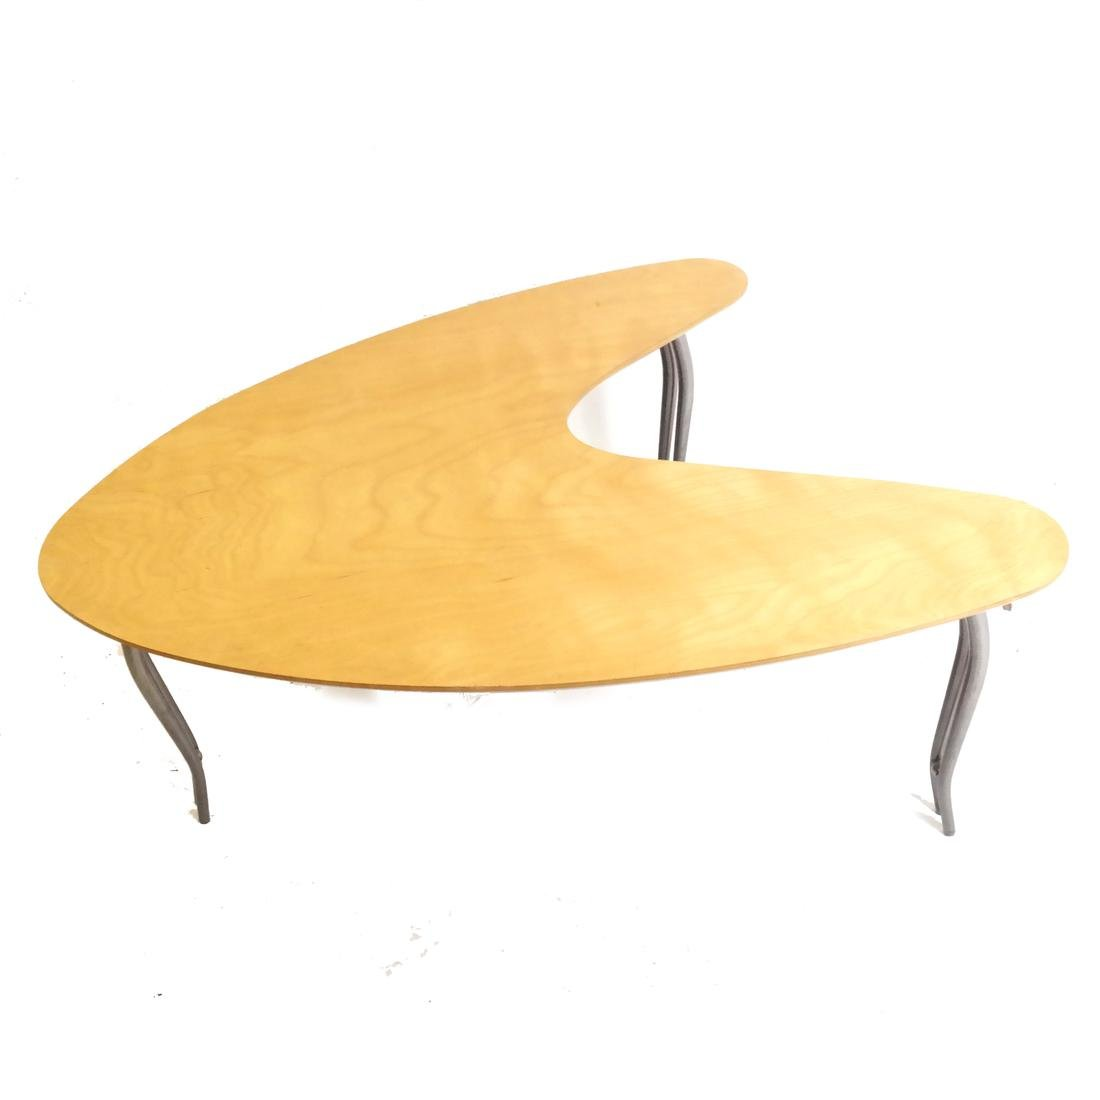 Modern Boomerang-Form Cocktail Table